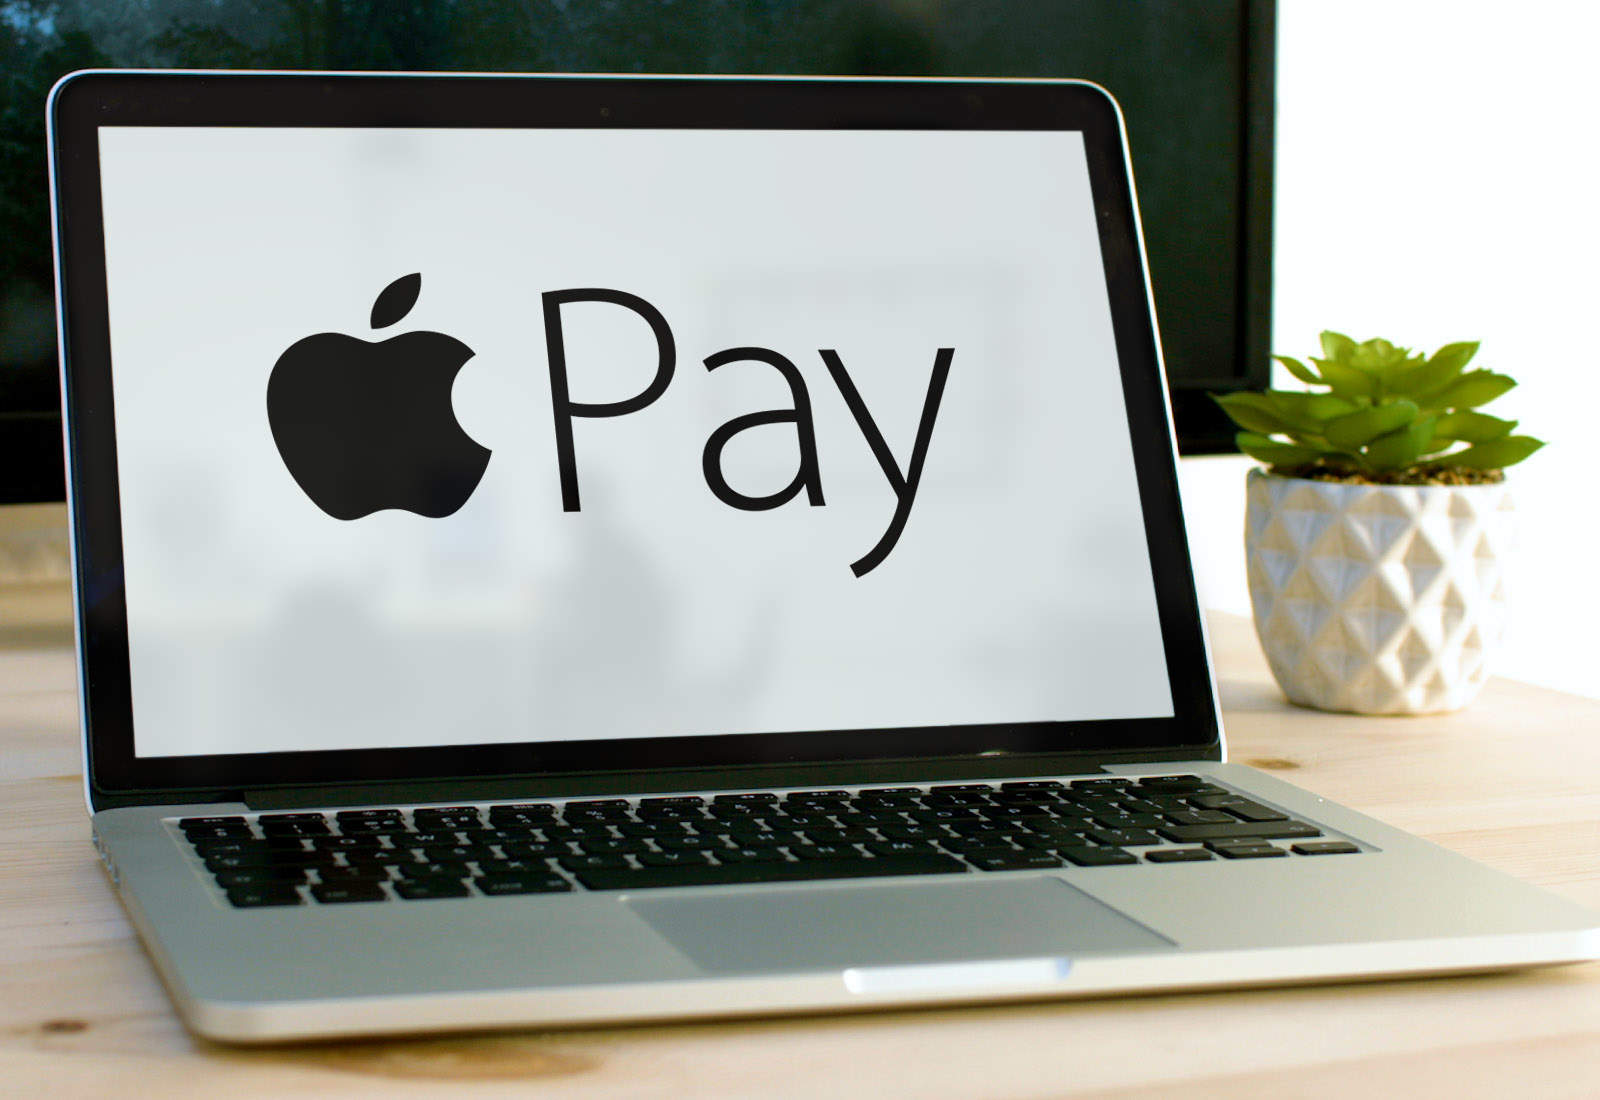 Antitrust investigators want to know if retailers were compelled to use Apple Pay